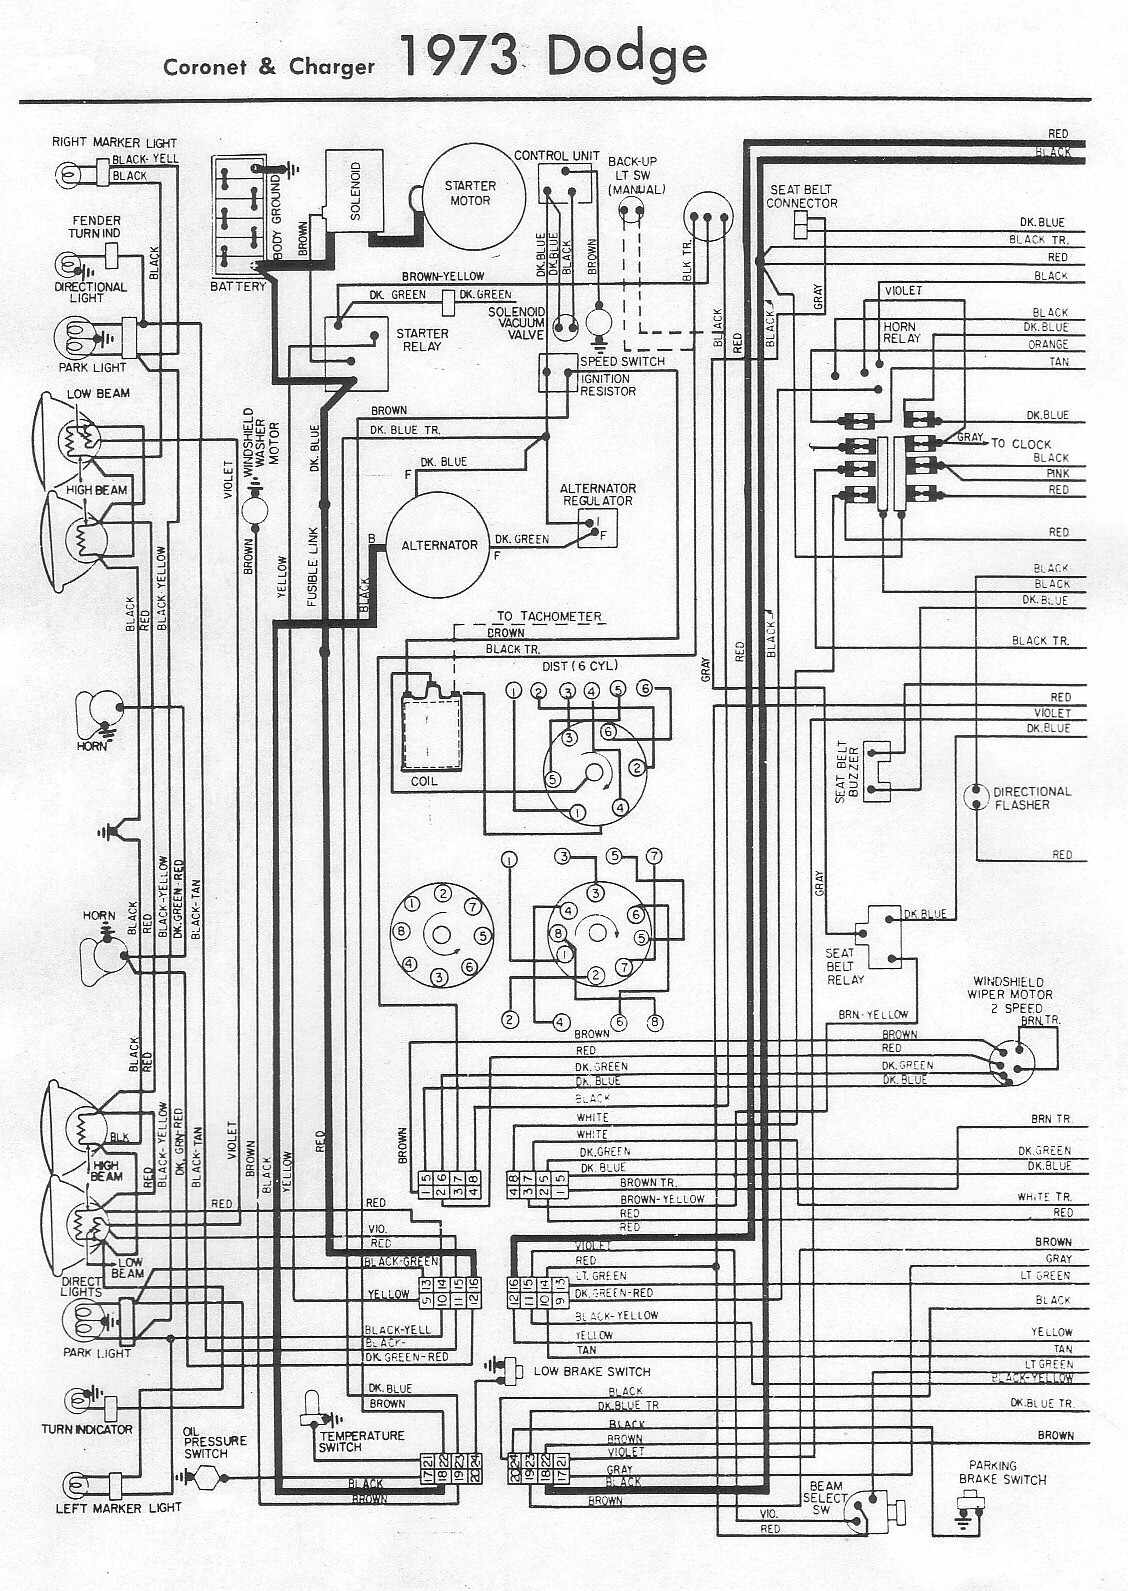 hight resolution of 1973 dodge challenger wiring diagram for electronic distributor wiring diagram expert